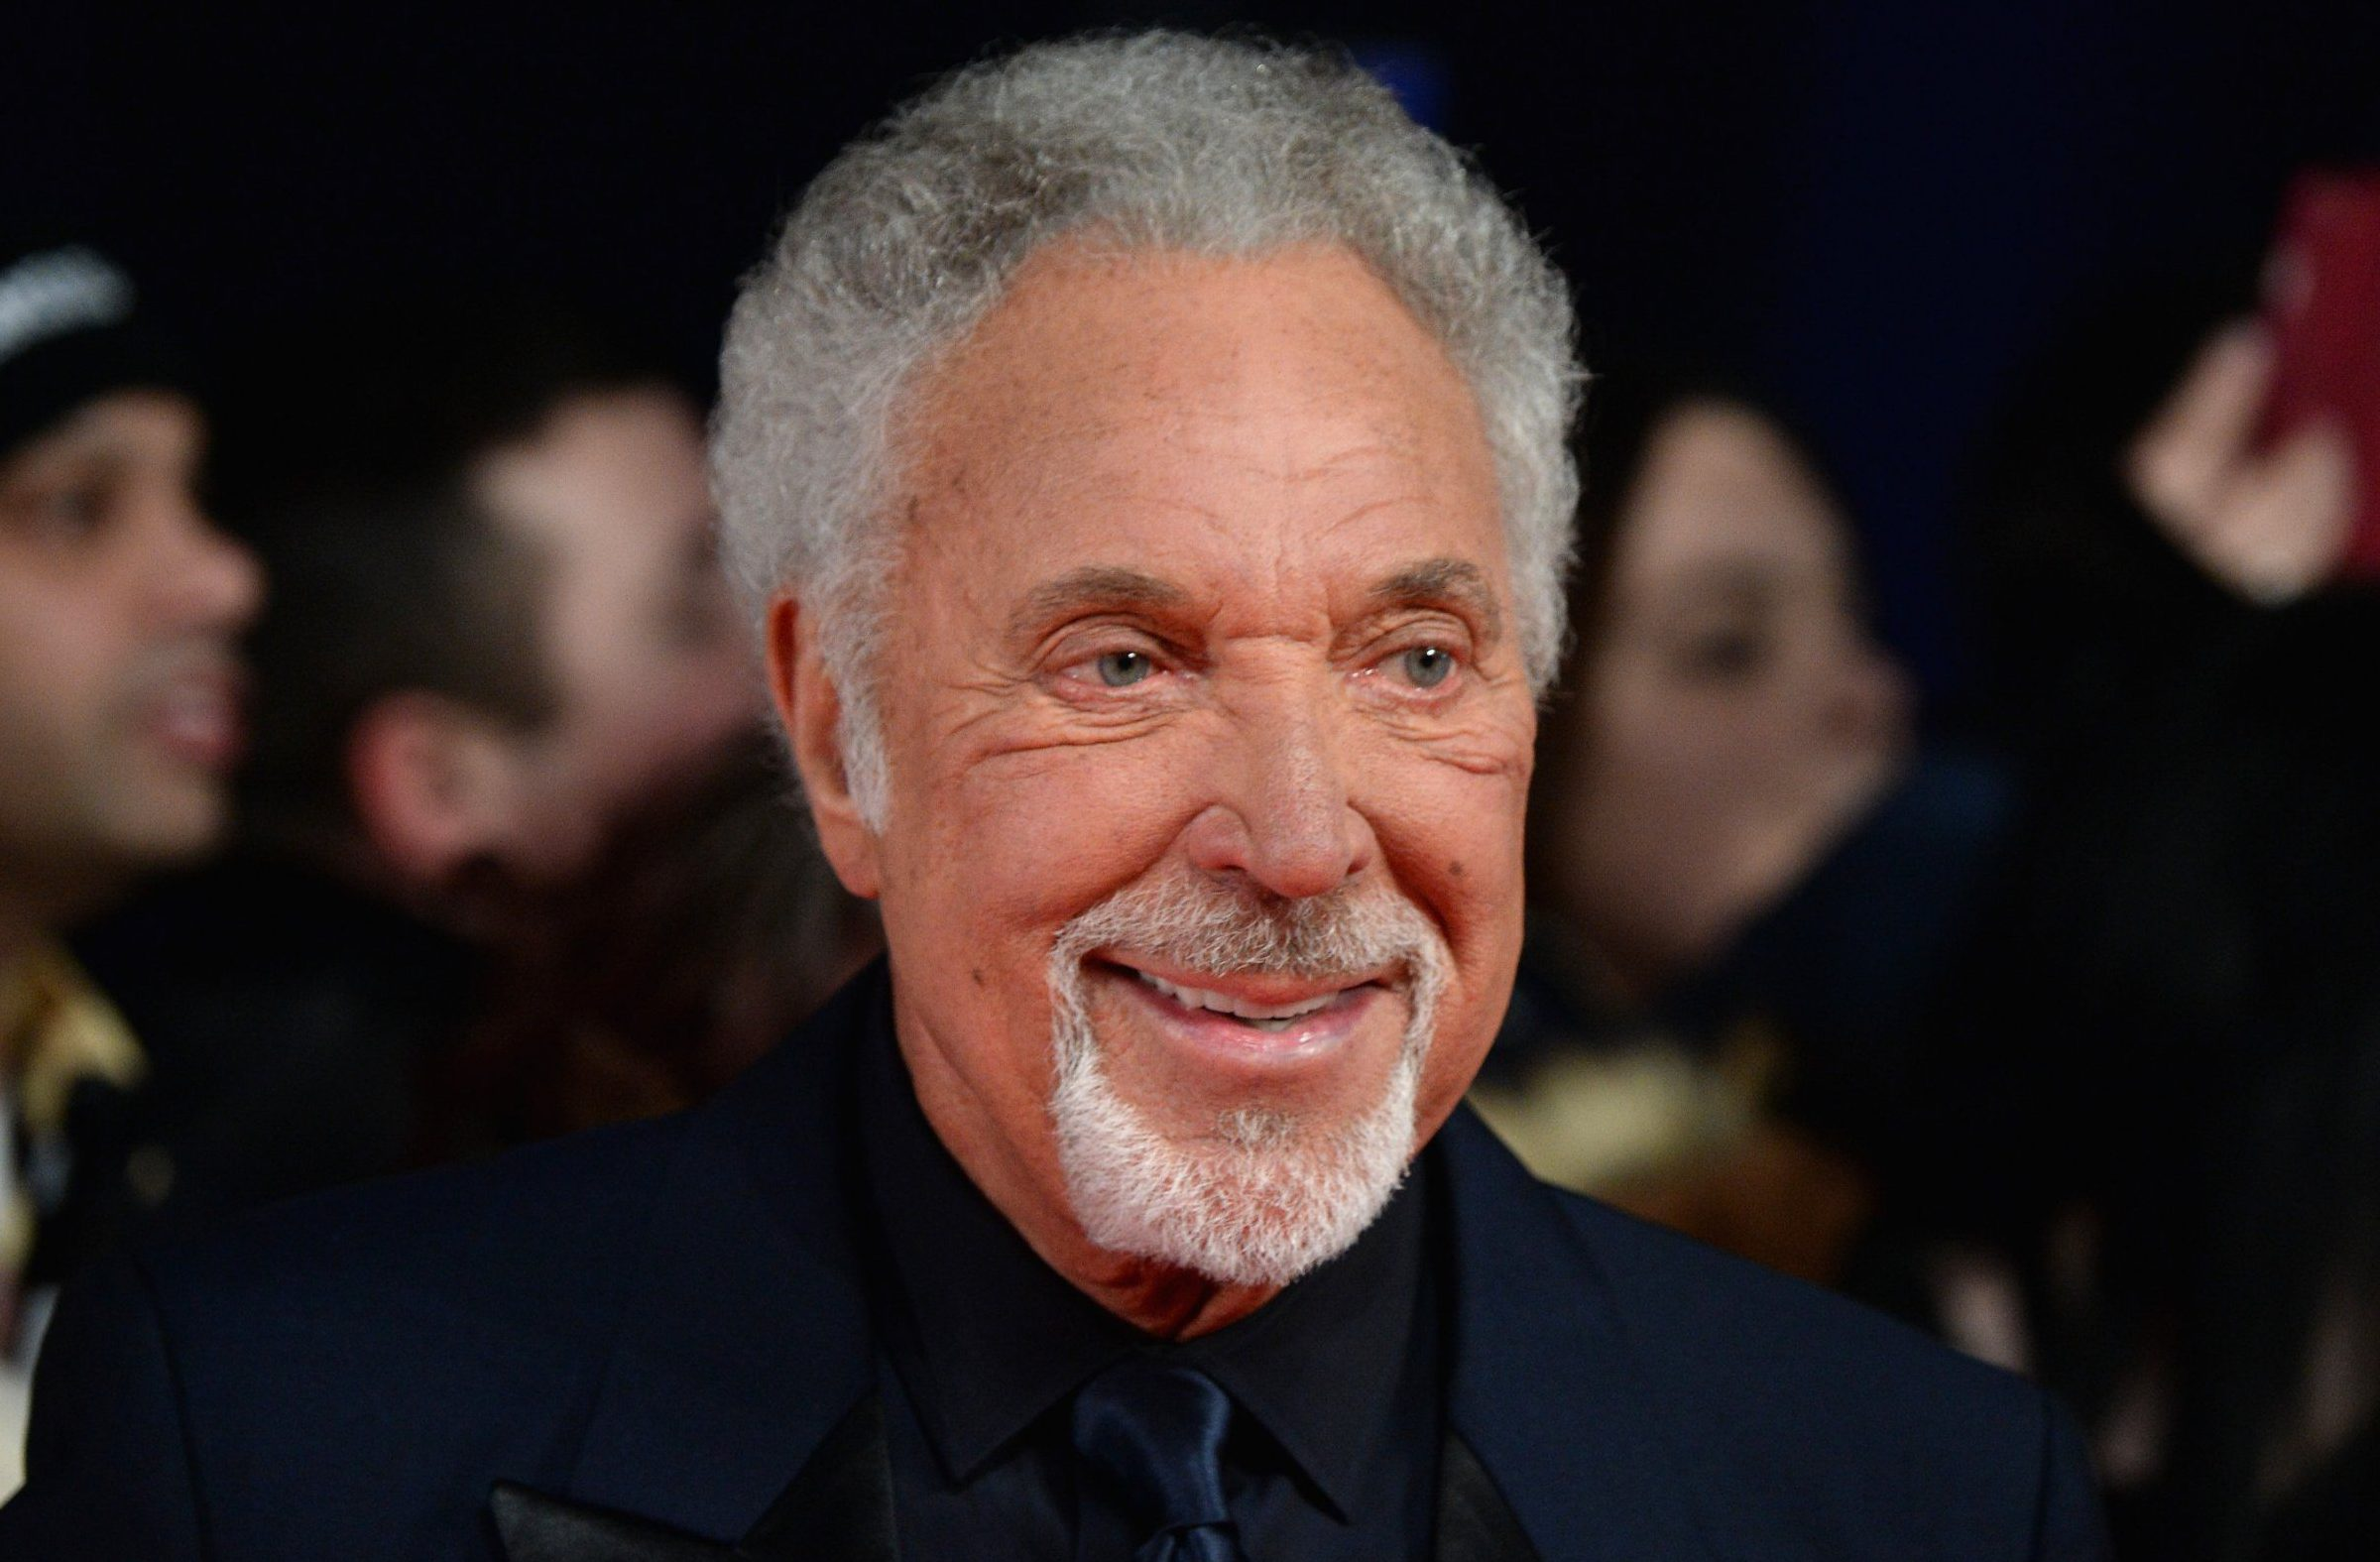 LONDON, ENGLAND - JANUARY 25: Singer Tom Jones attends the National Television Awards on January 25, 2017 in London, United Kingdom. (Photo by Anthony Harvey/Getty Images)